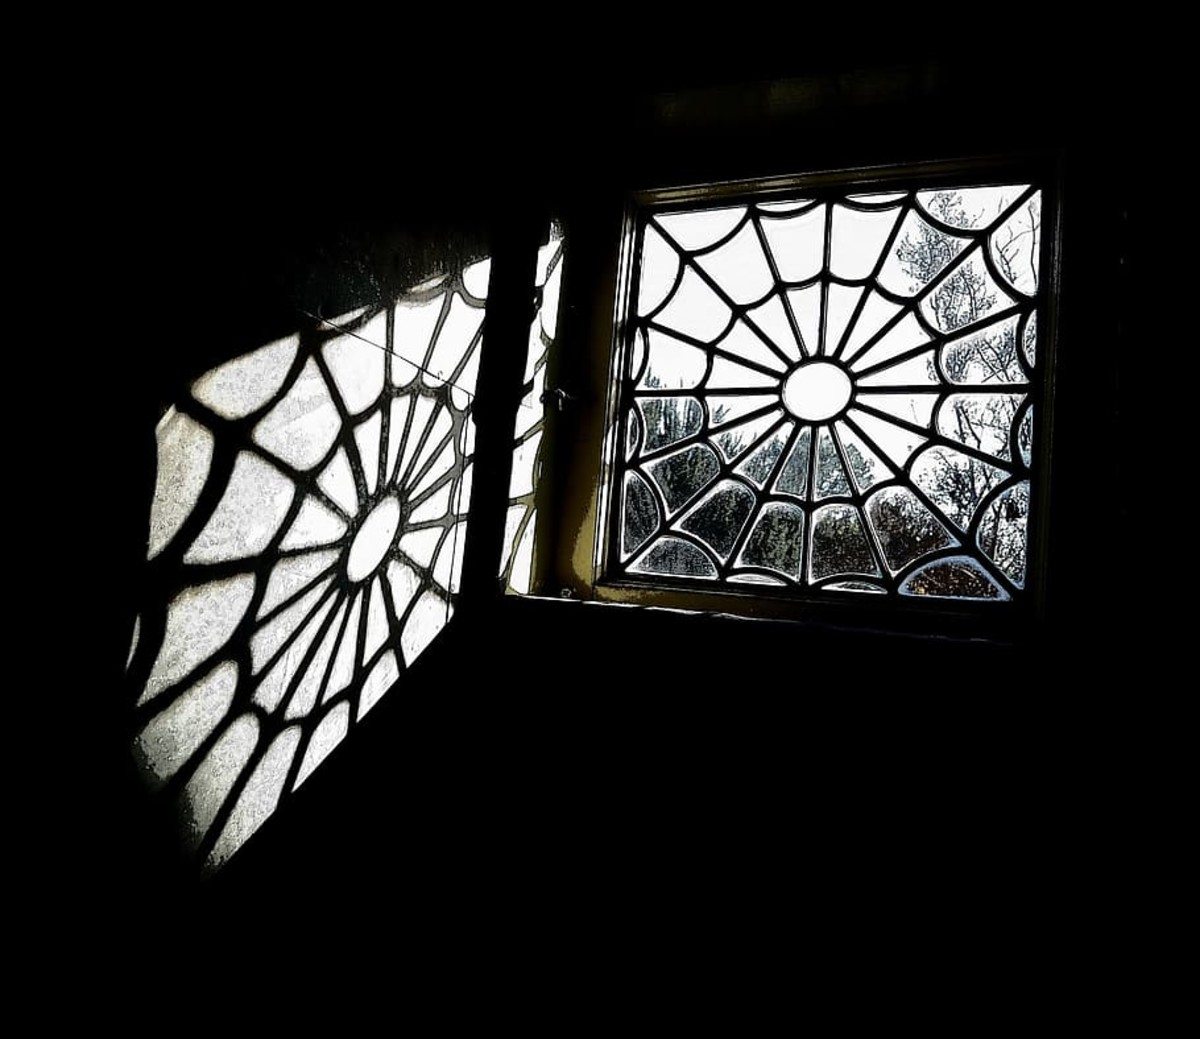 Spider-web windows are said to be one of Mrs. Winchester's innovations aimed at throwing the goblins off balance.